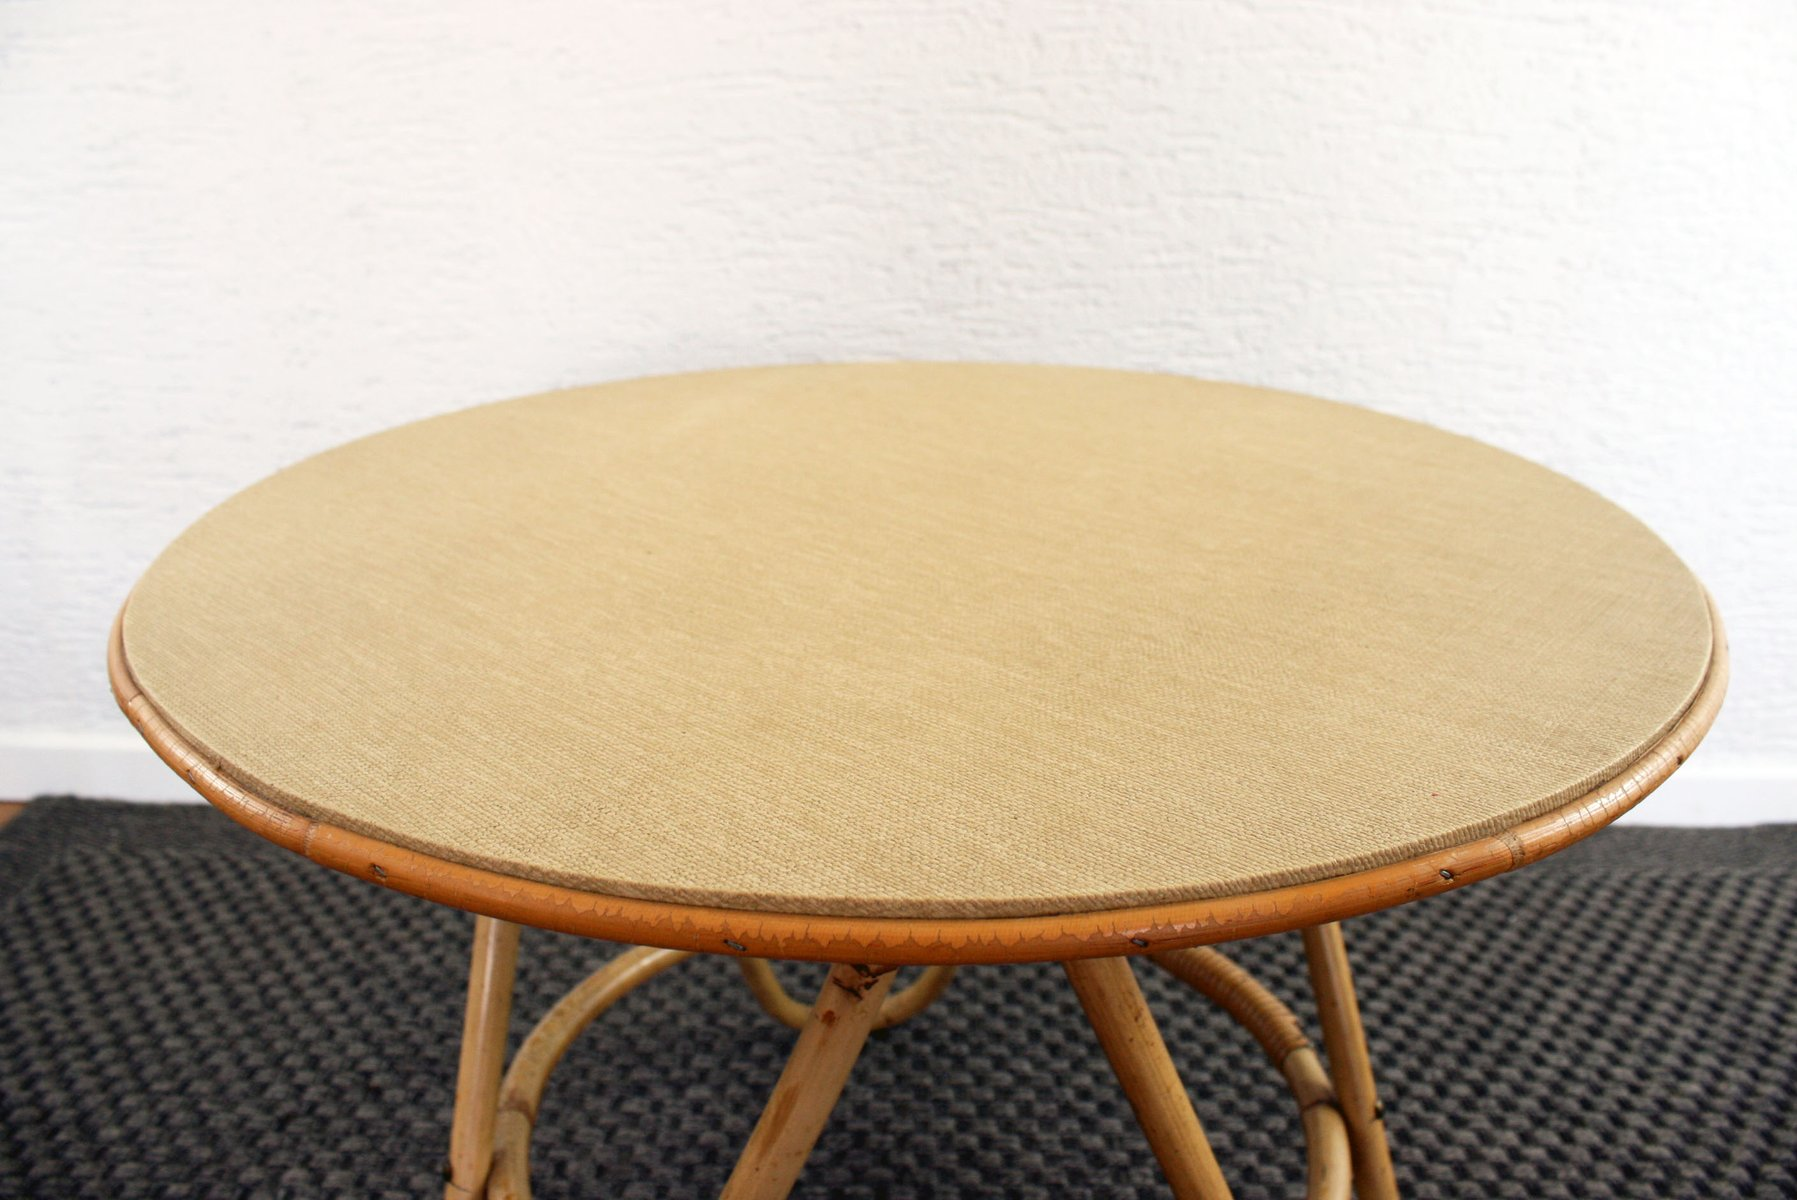 Vintage Round Rattan Coffee Table for sale at Pamono